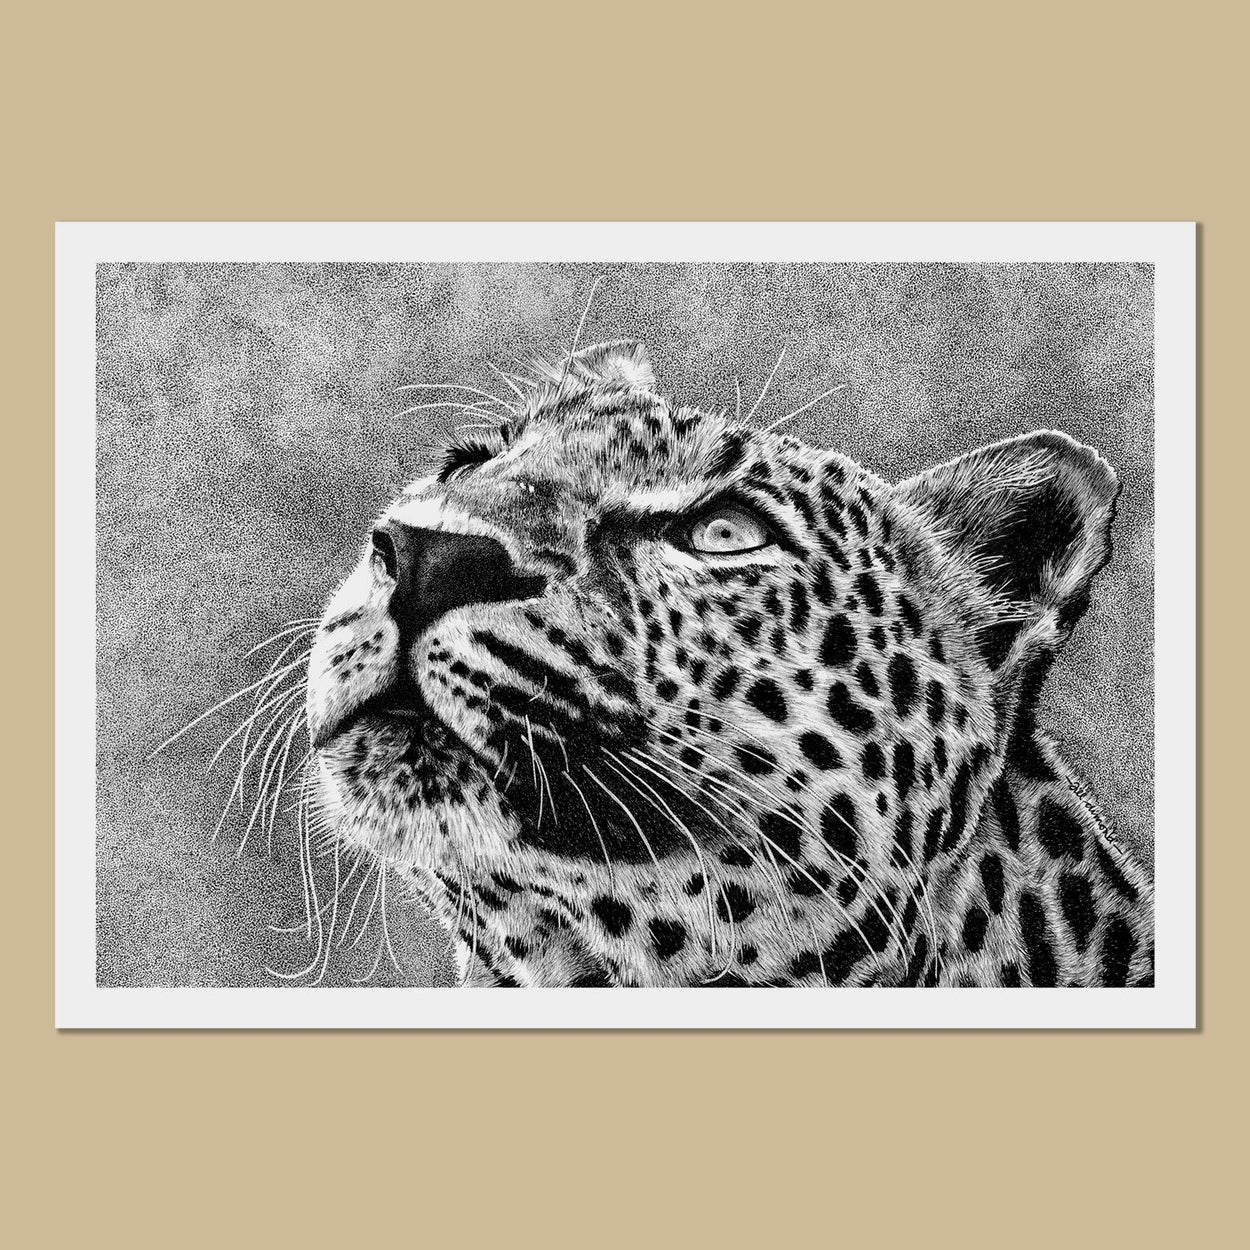 Leopard Art Prints - The Thriving Wild